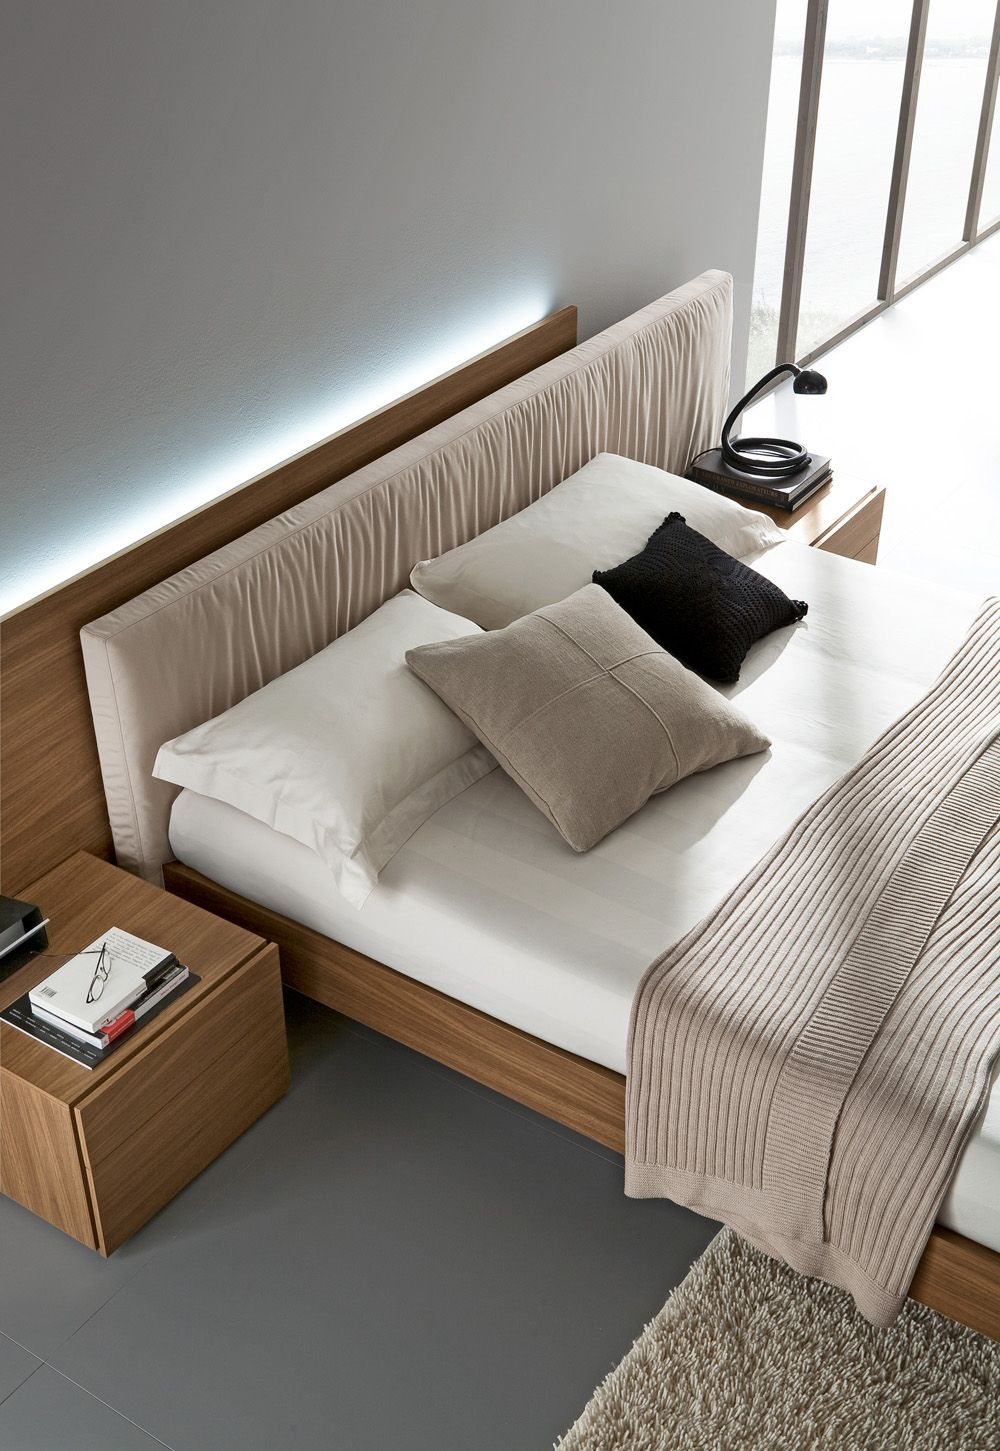 Bedroom Packages: Exclusive Leather High End Bedroom Furniture Sets Feat